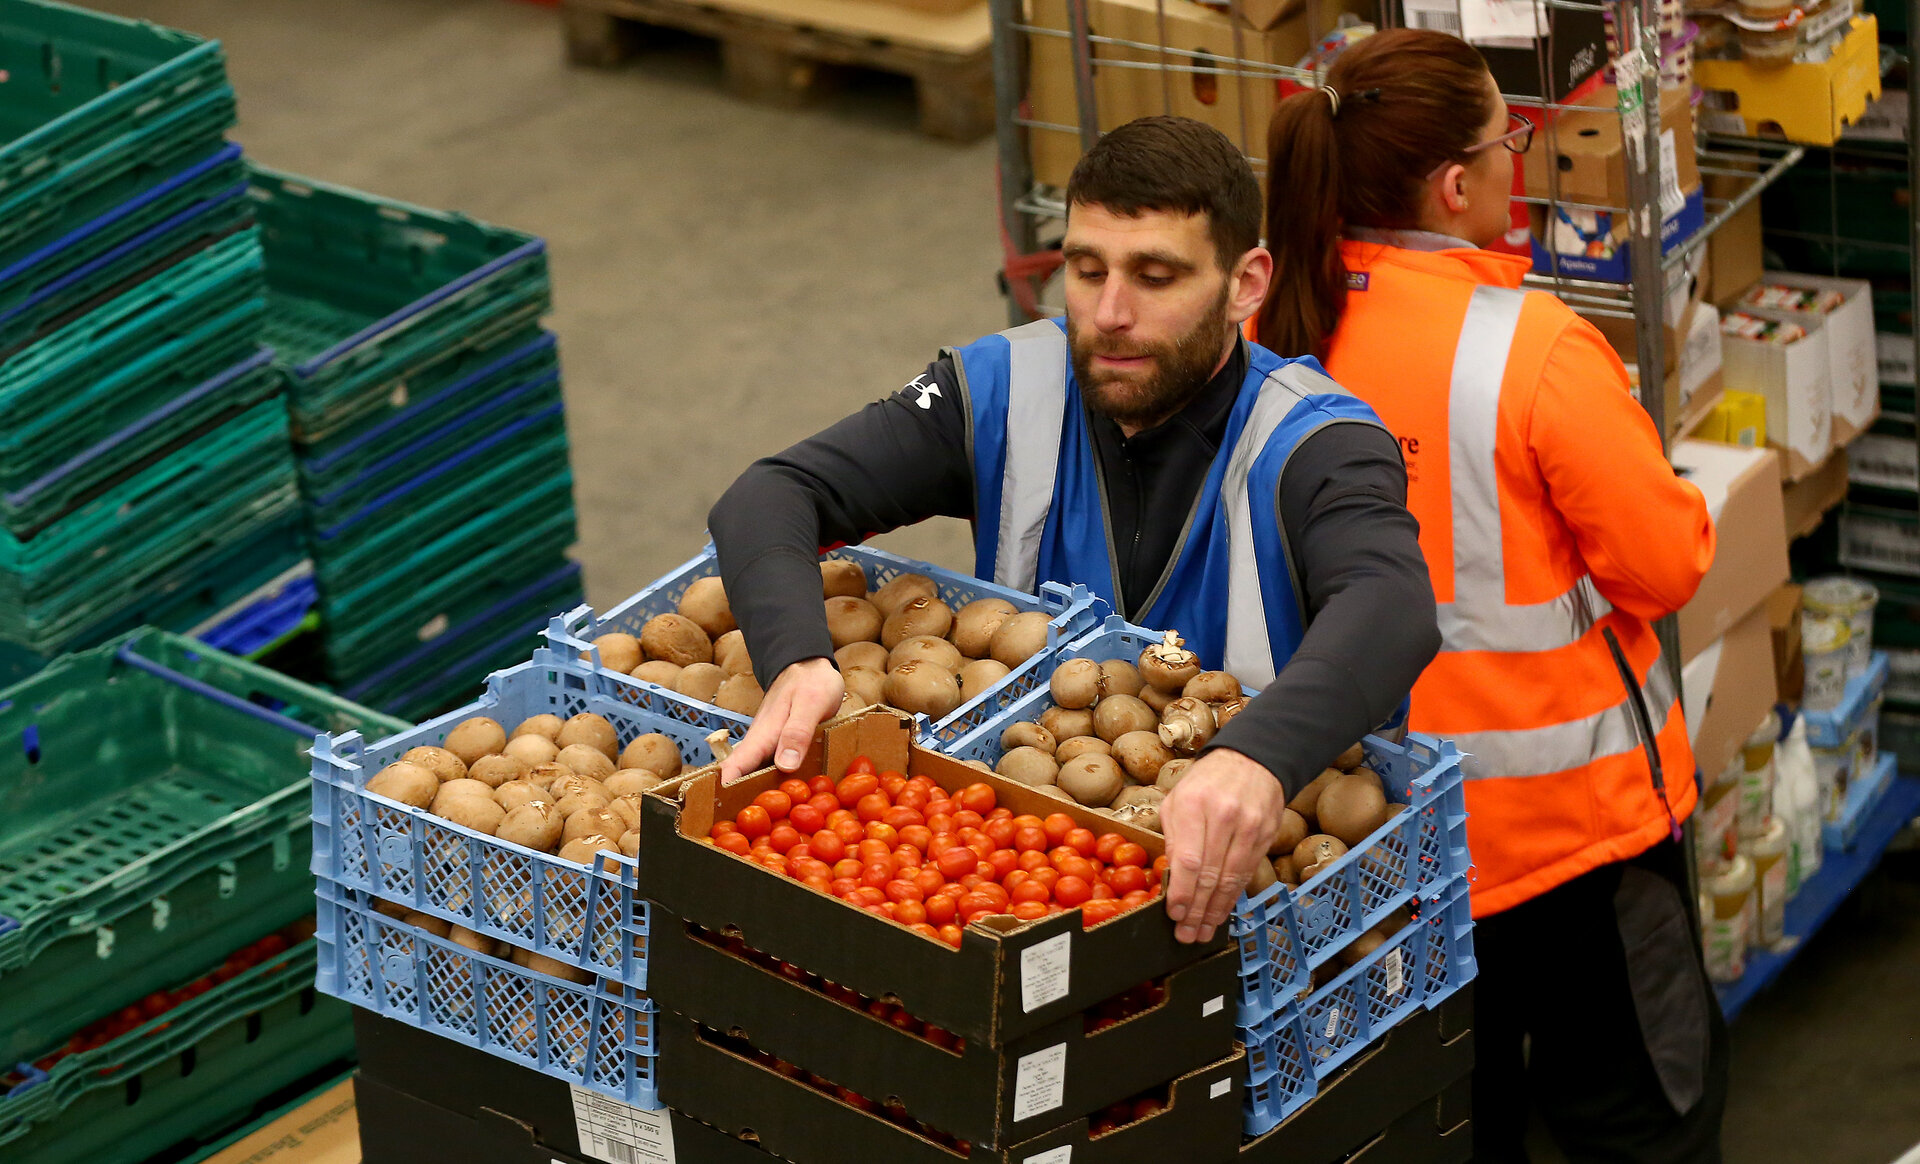 SOUTHAMPTON, ENGLAND - APRIL 07: Saints Foundation staff volunteer at FareShare, a local food distribution centre, on April 07, 2020 in Southampton, England. (Photo by Matt Watson/Southampton FC via Getty Images)